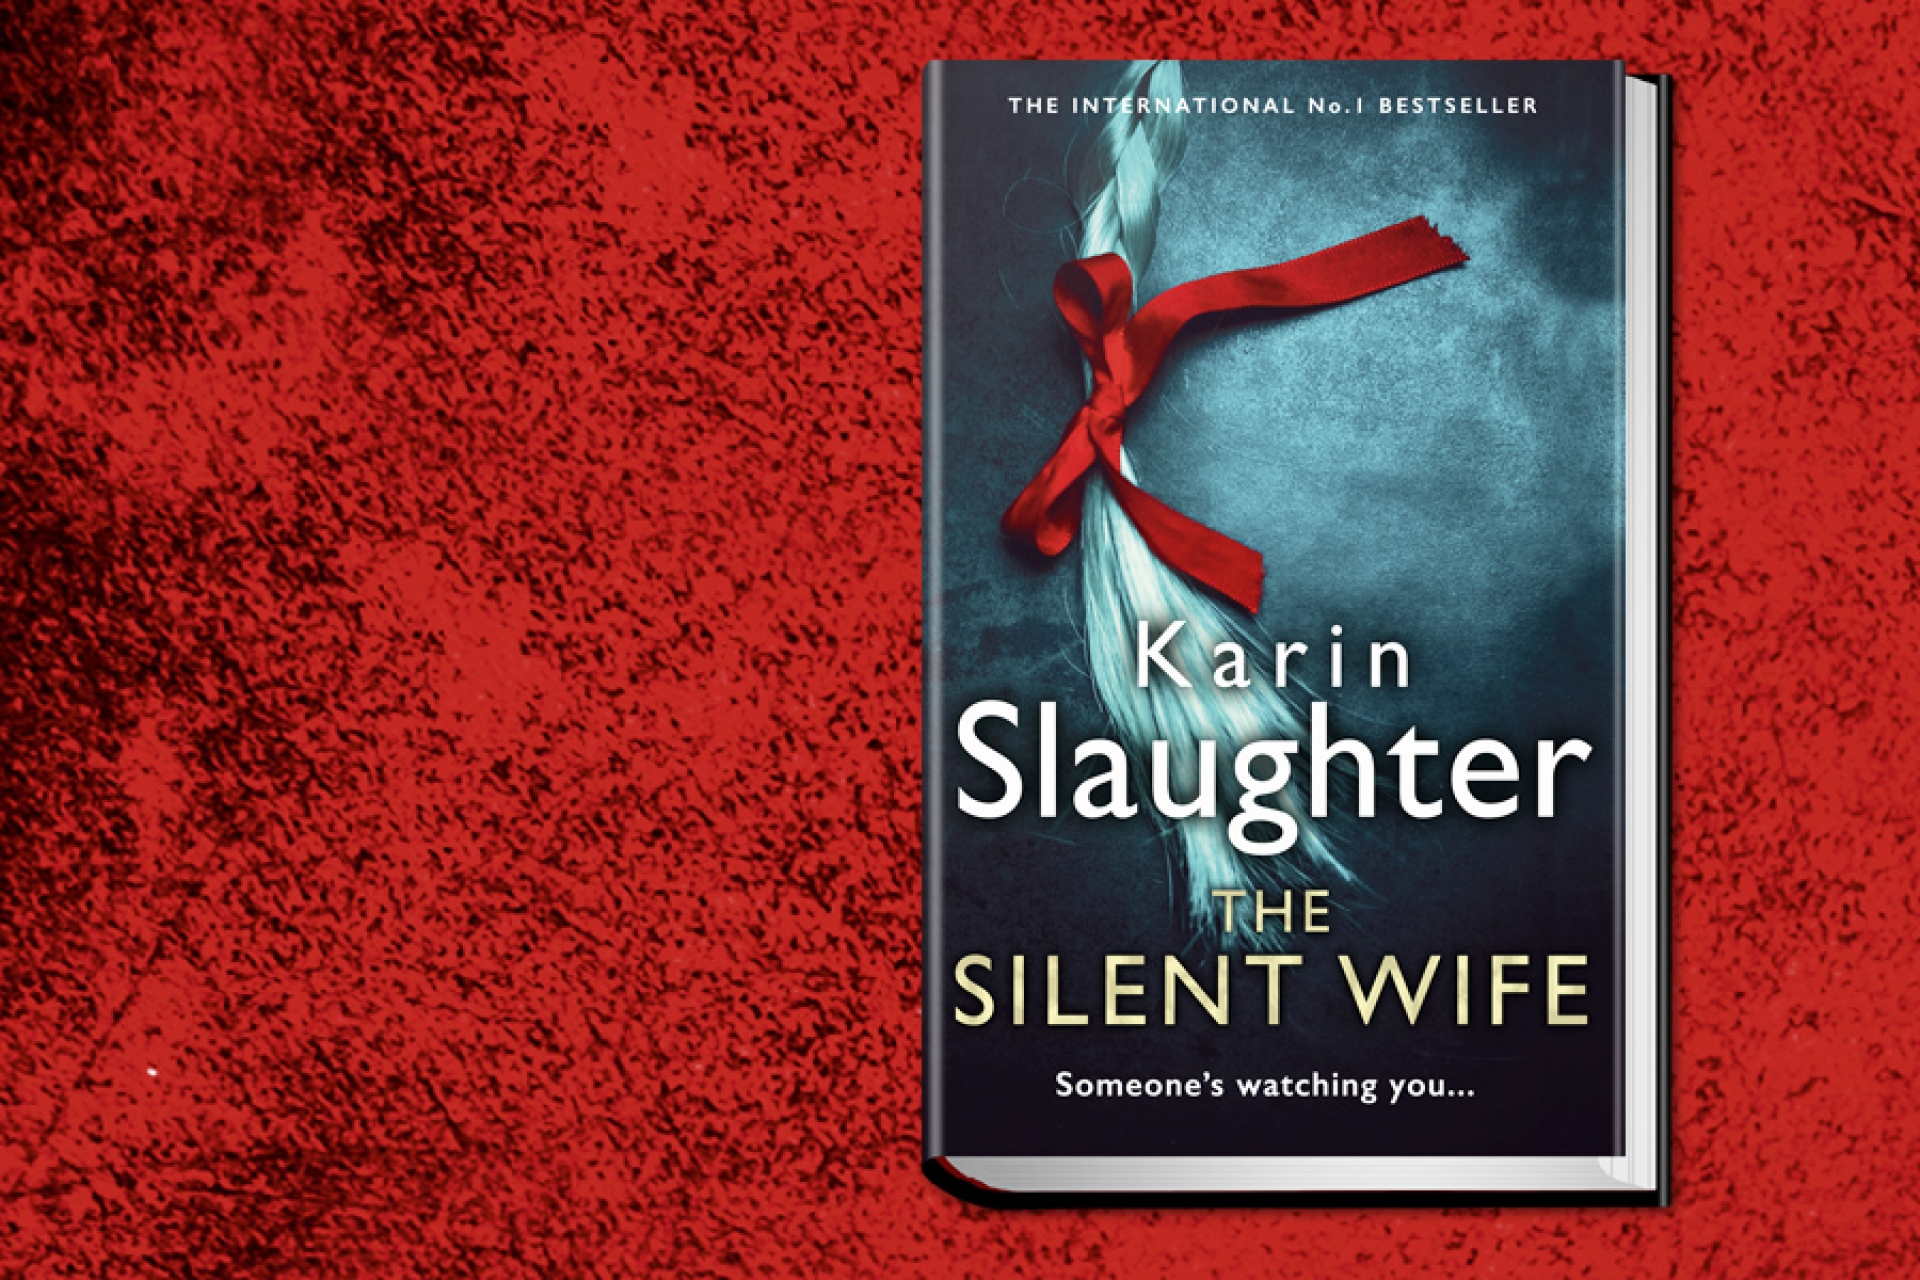 Karin Slaughter - 20 years, 20 books